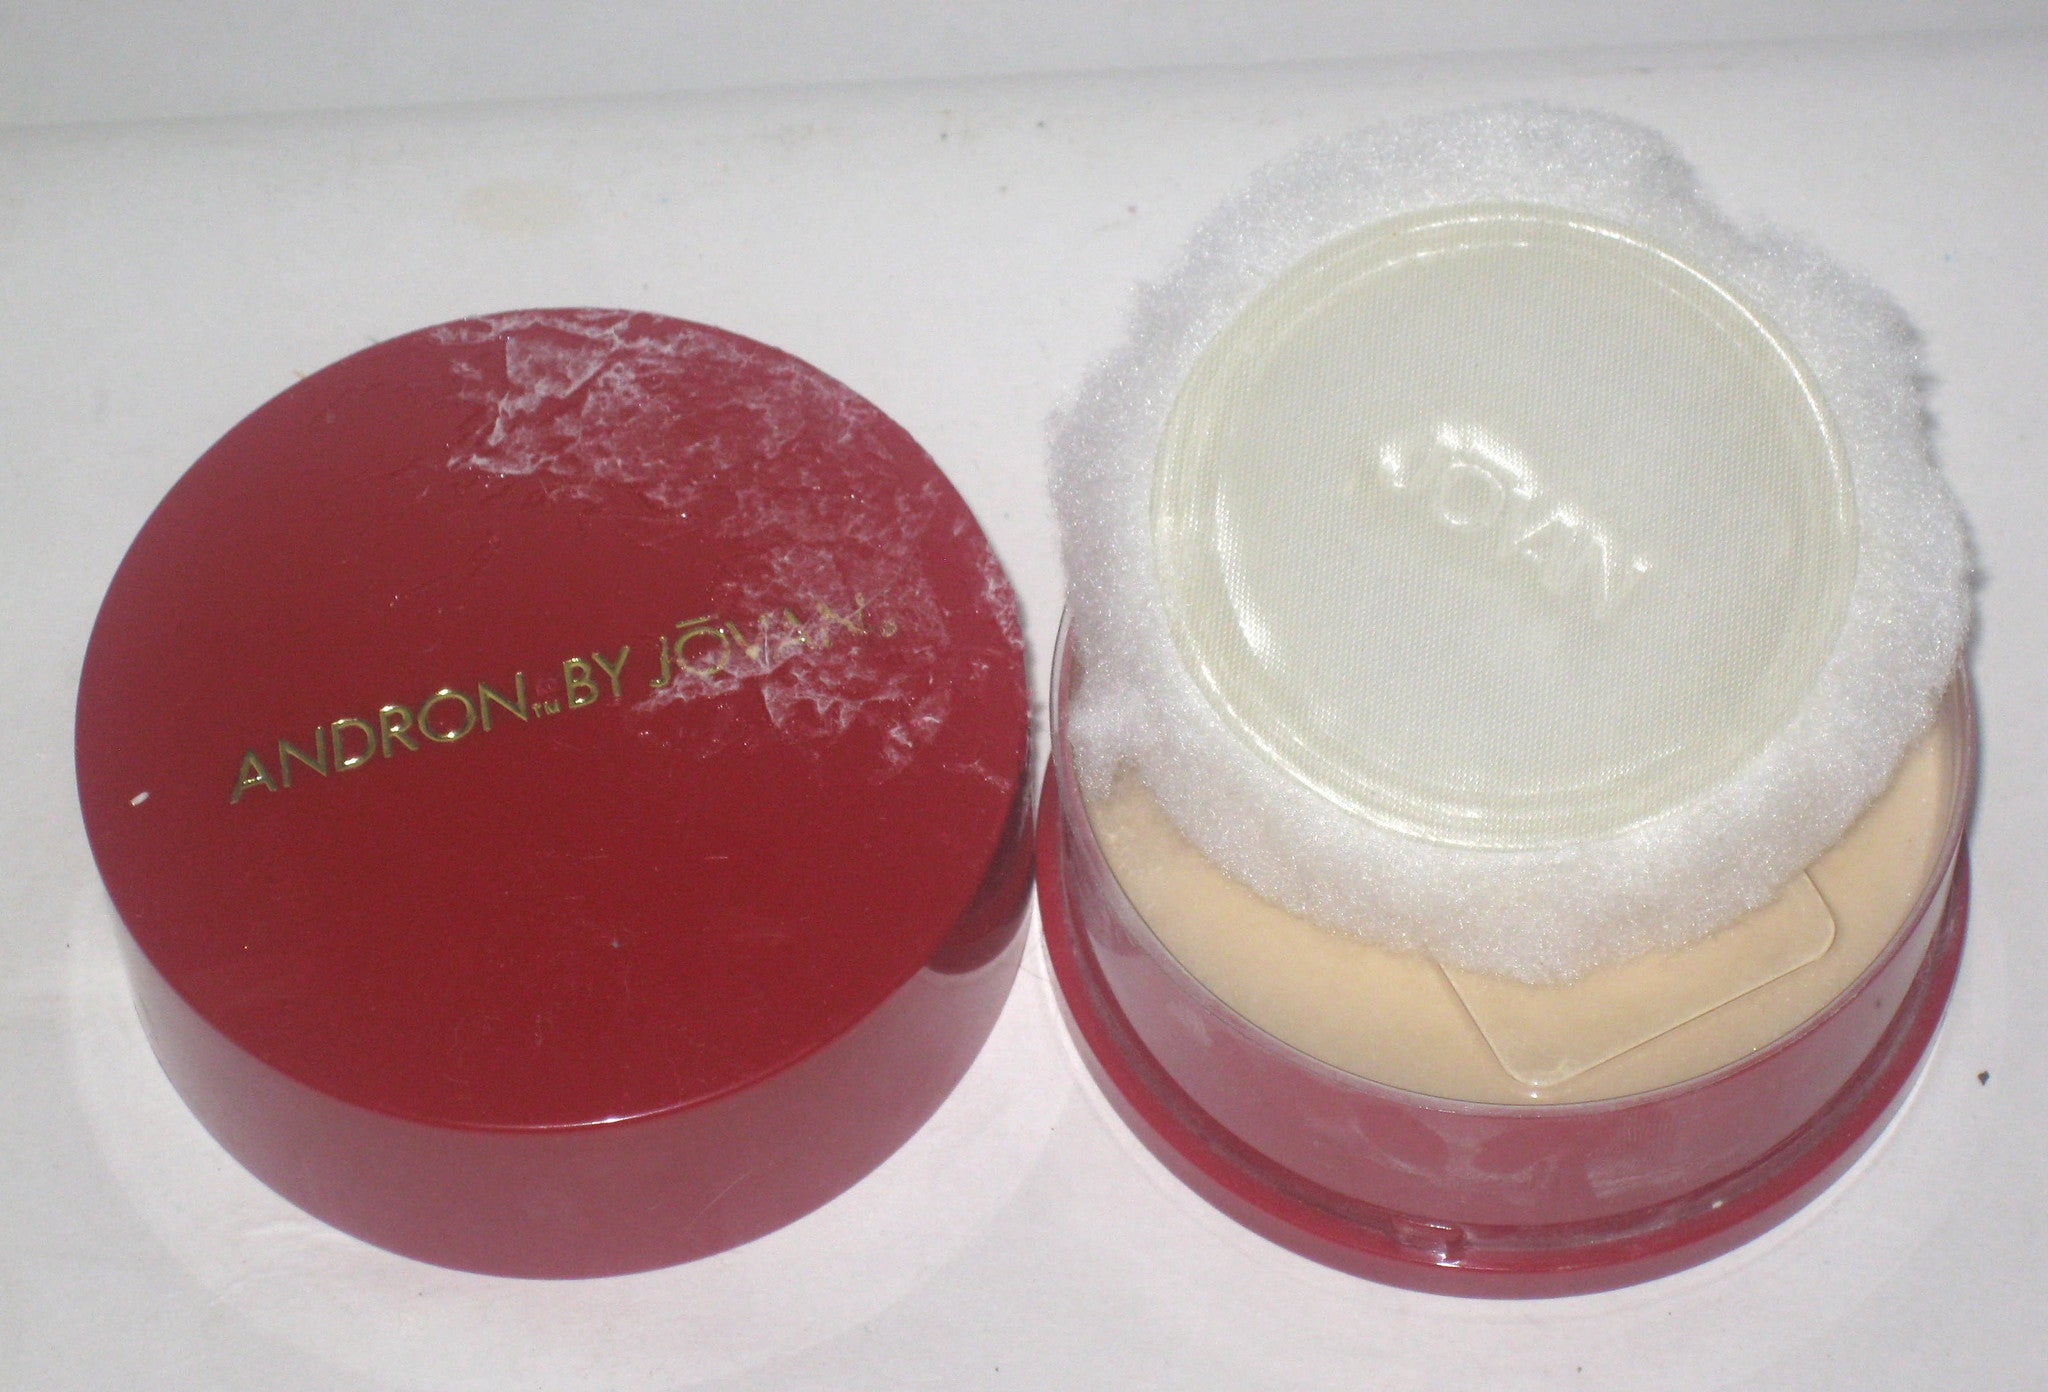 Jovan Andron Dusting Powder